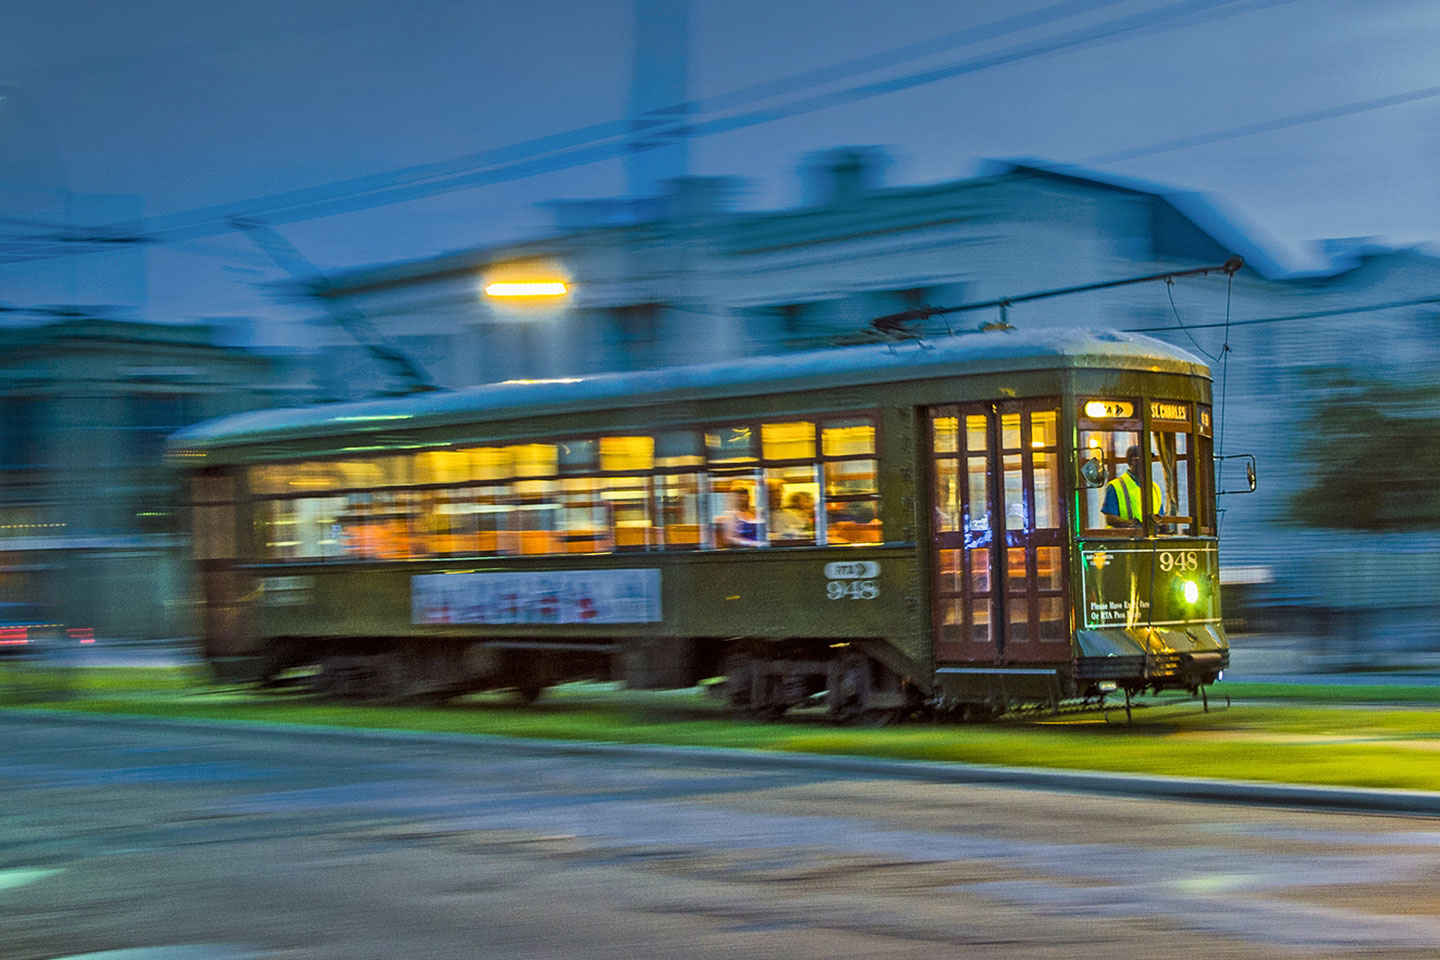 Great Wedding Ideas: Take a Trolley to Your Reception